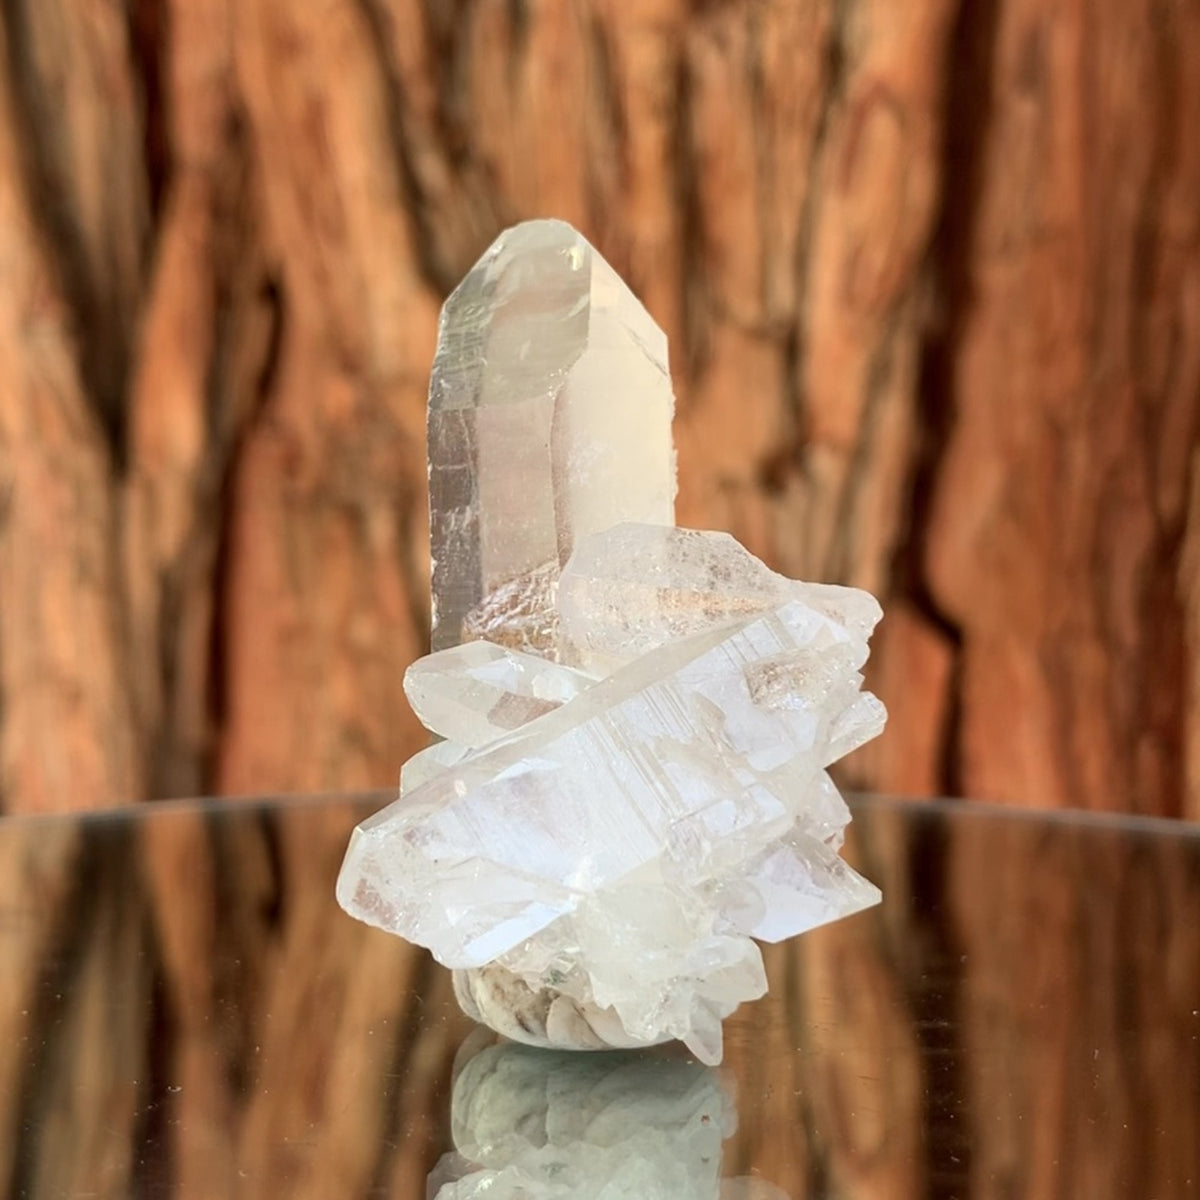 5.5cm 36g Himalayan Clear Quartz from Niamuru Mine, Arundo Village, Shigar District, Gilgit-Baltistan, Pakistan